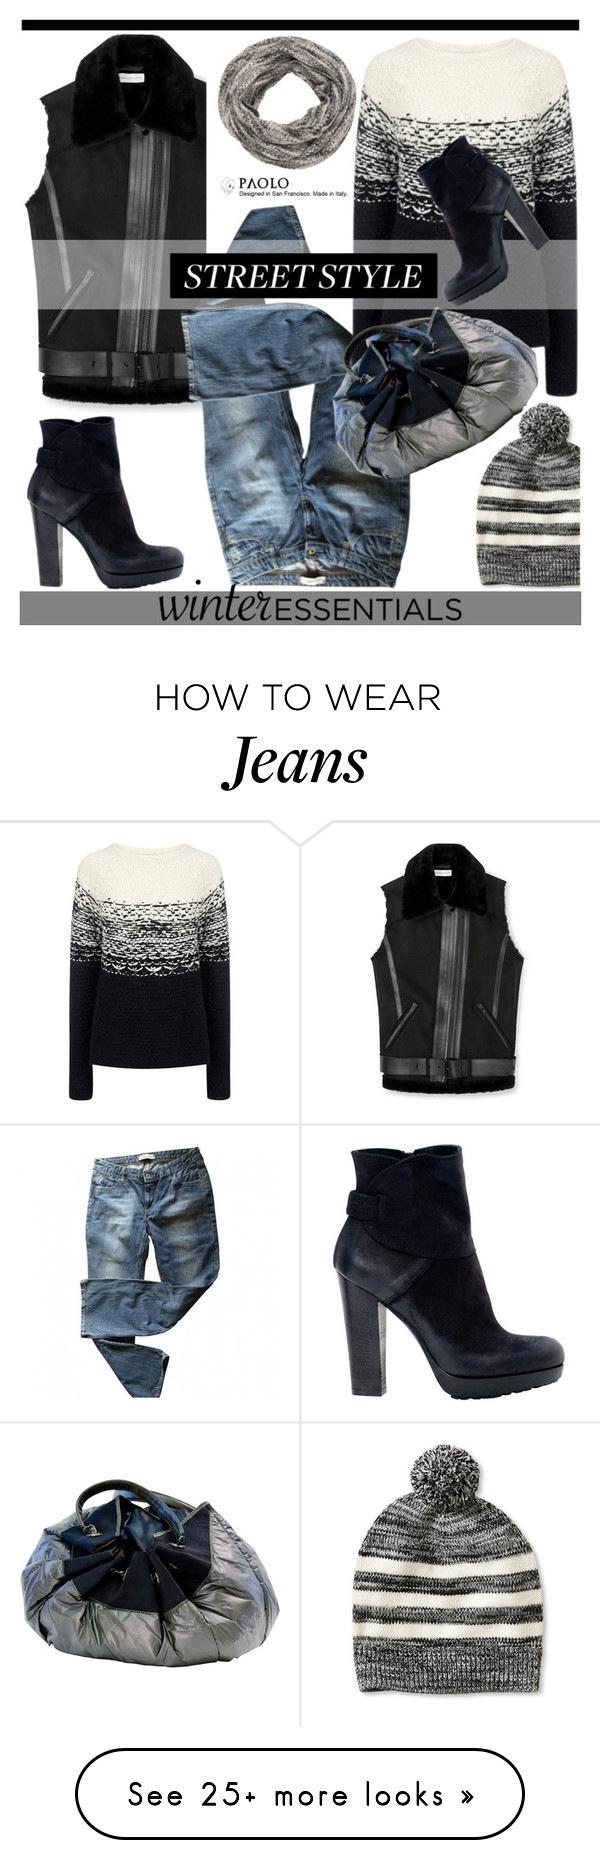 """""""Winter Essentials in PaoloShoes"""" by spenderellastyle on Polyvore featuring Rebecca Minkoff, Levi's, maurices, Banana Republic and Paul & Joe Sister"""